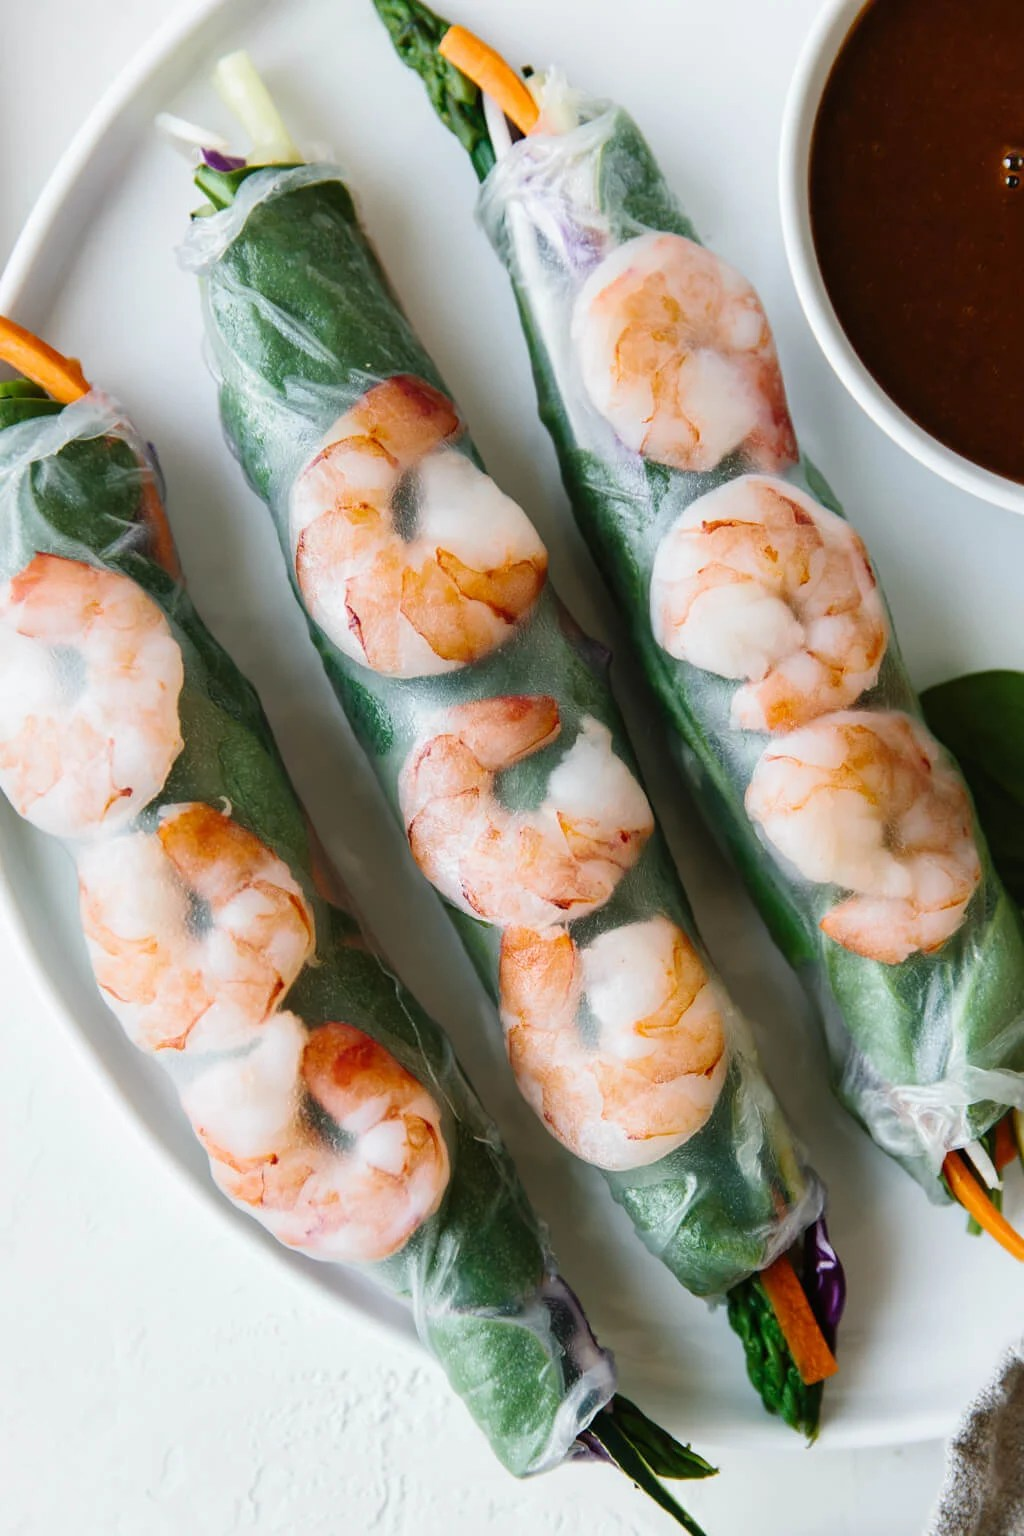 Vietnamese spring rolls filled with shrimp, spinach and vegetables and served with an almond butter dipping sauce. They're the perfect light and healthy recipe.